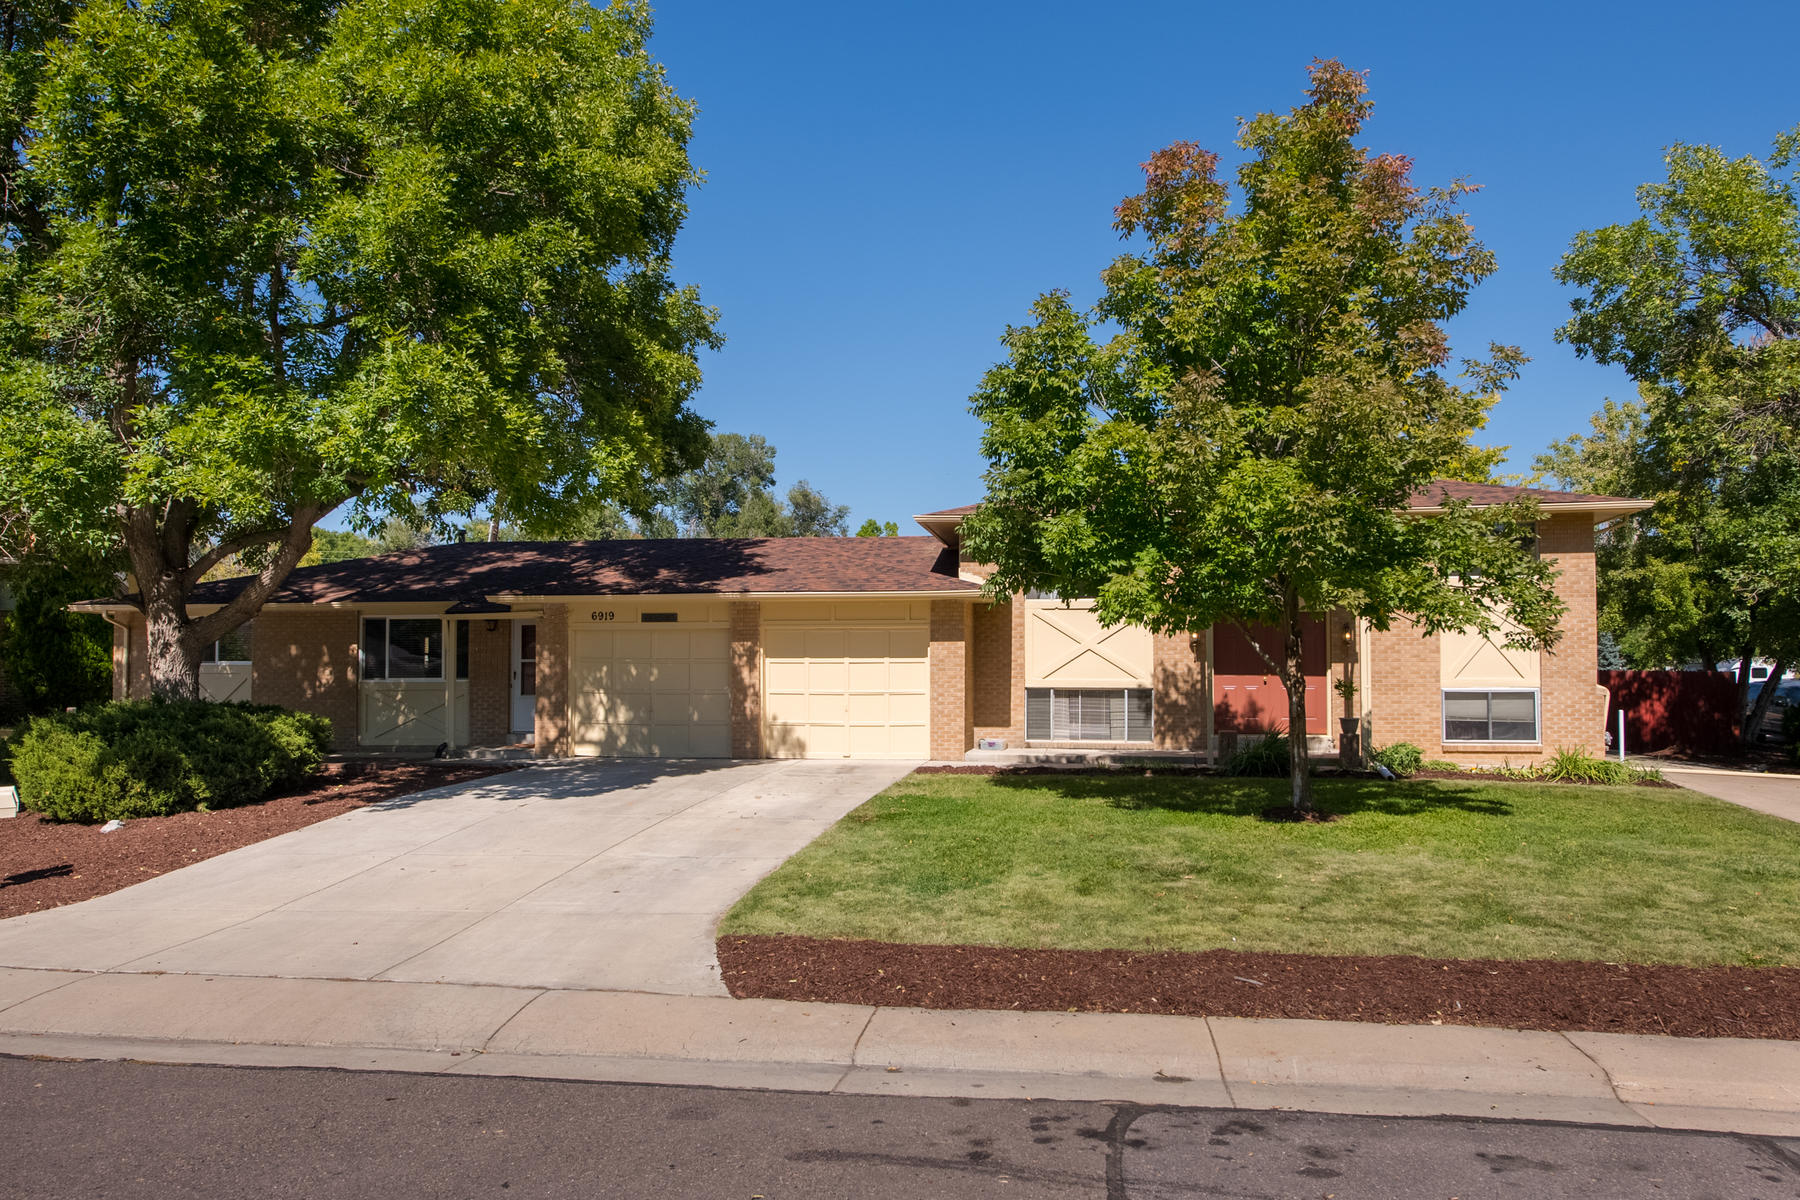 Property for Active at A Fantastic Investment Opportunity Near Edgewater/Sloan's Lake 6909 W 25th Pl Lakewood, Colorado 80214 United States